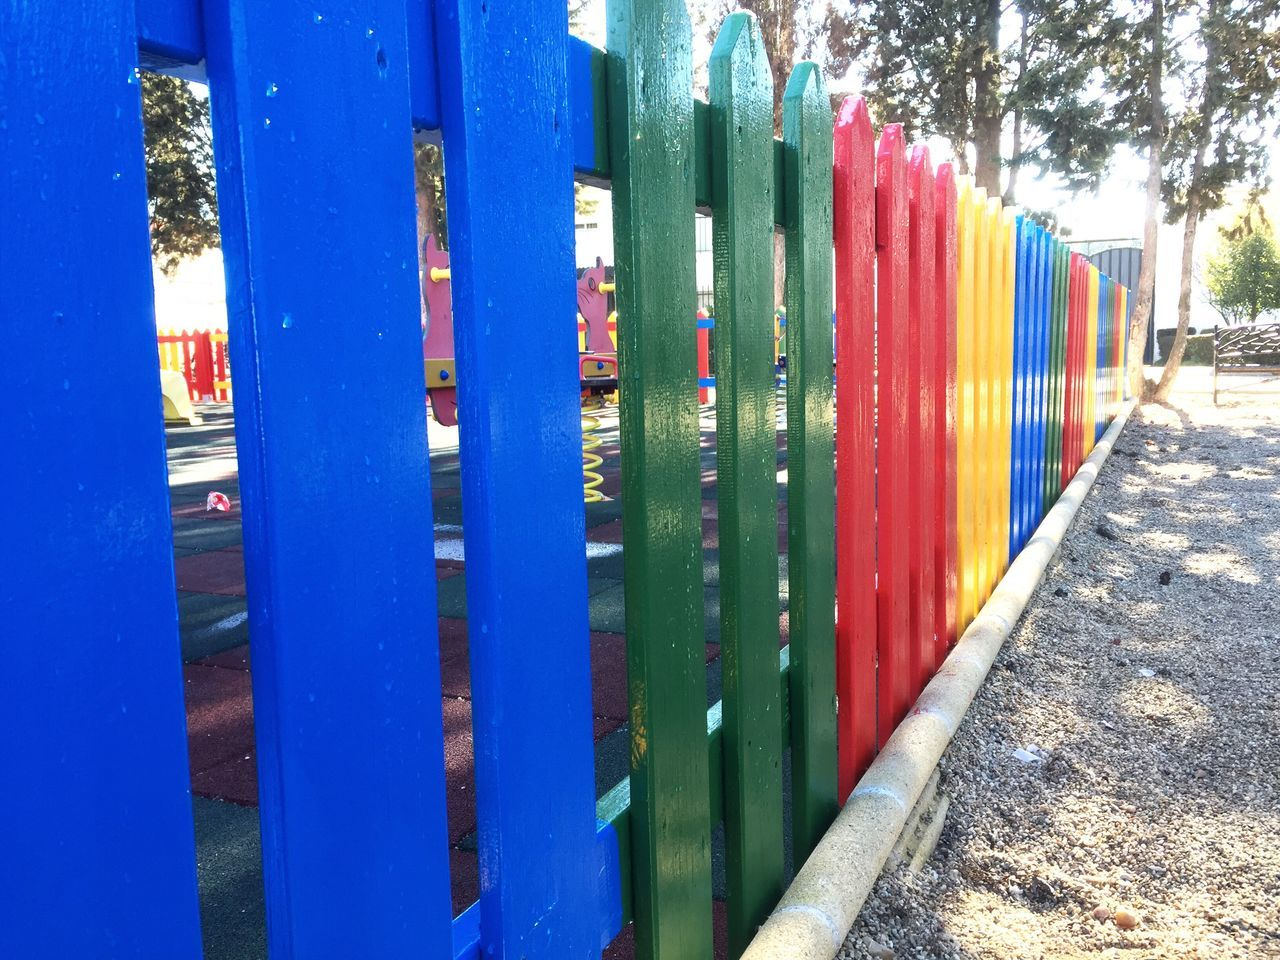 Multi Colored Multicolors  Color Colors Colorful Park Park - Man Made Space Outdoors No People Close-up Rural Scenes From My Point Of View Playground Adapted To The City Fence Wooden Wooden Fence Organized Organization Street Tranquil Scene Cityscape Architecture Color Palette Urban